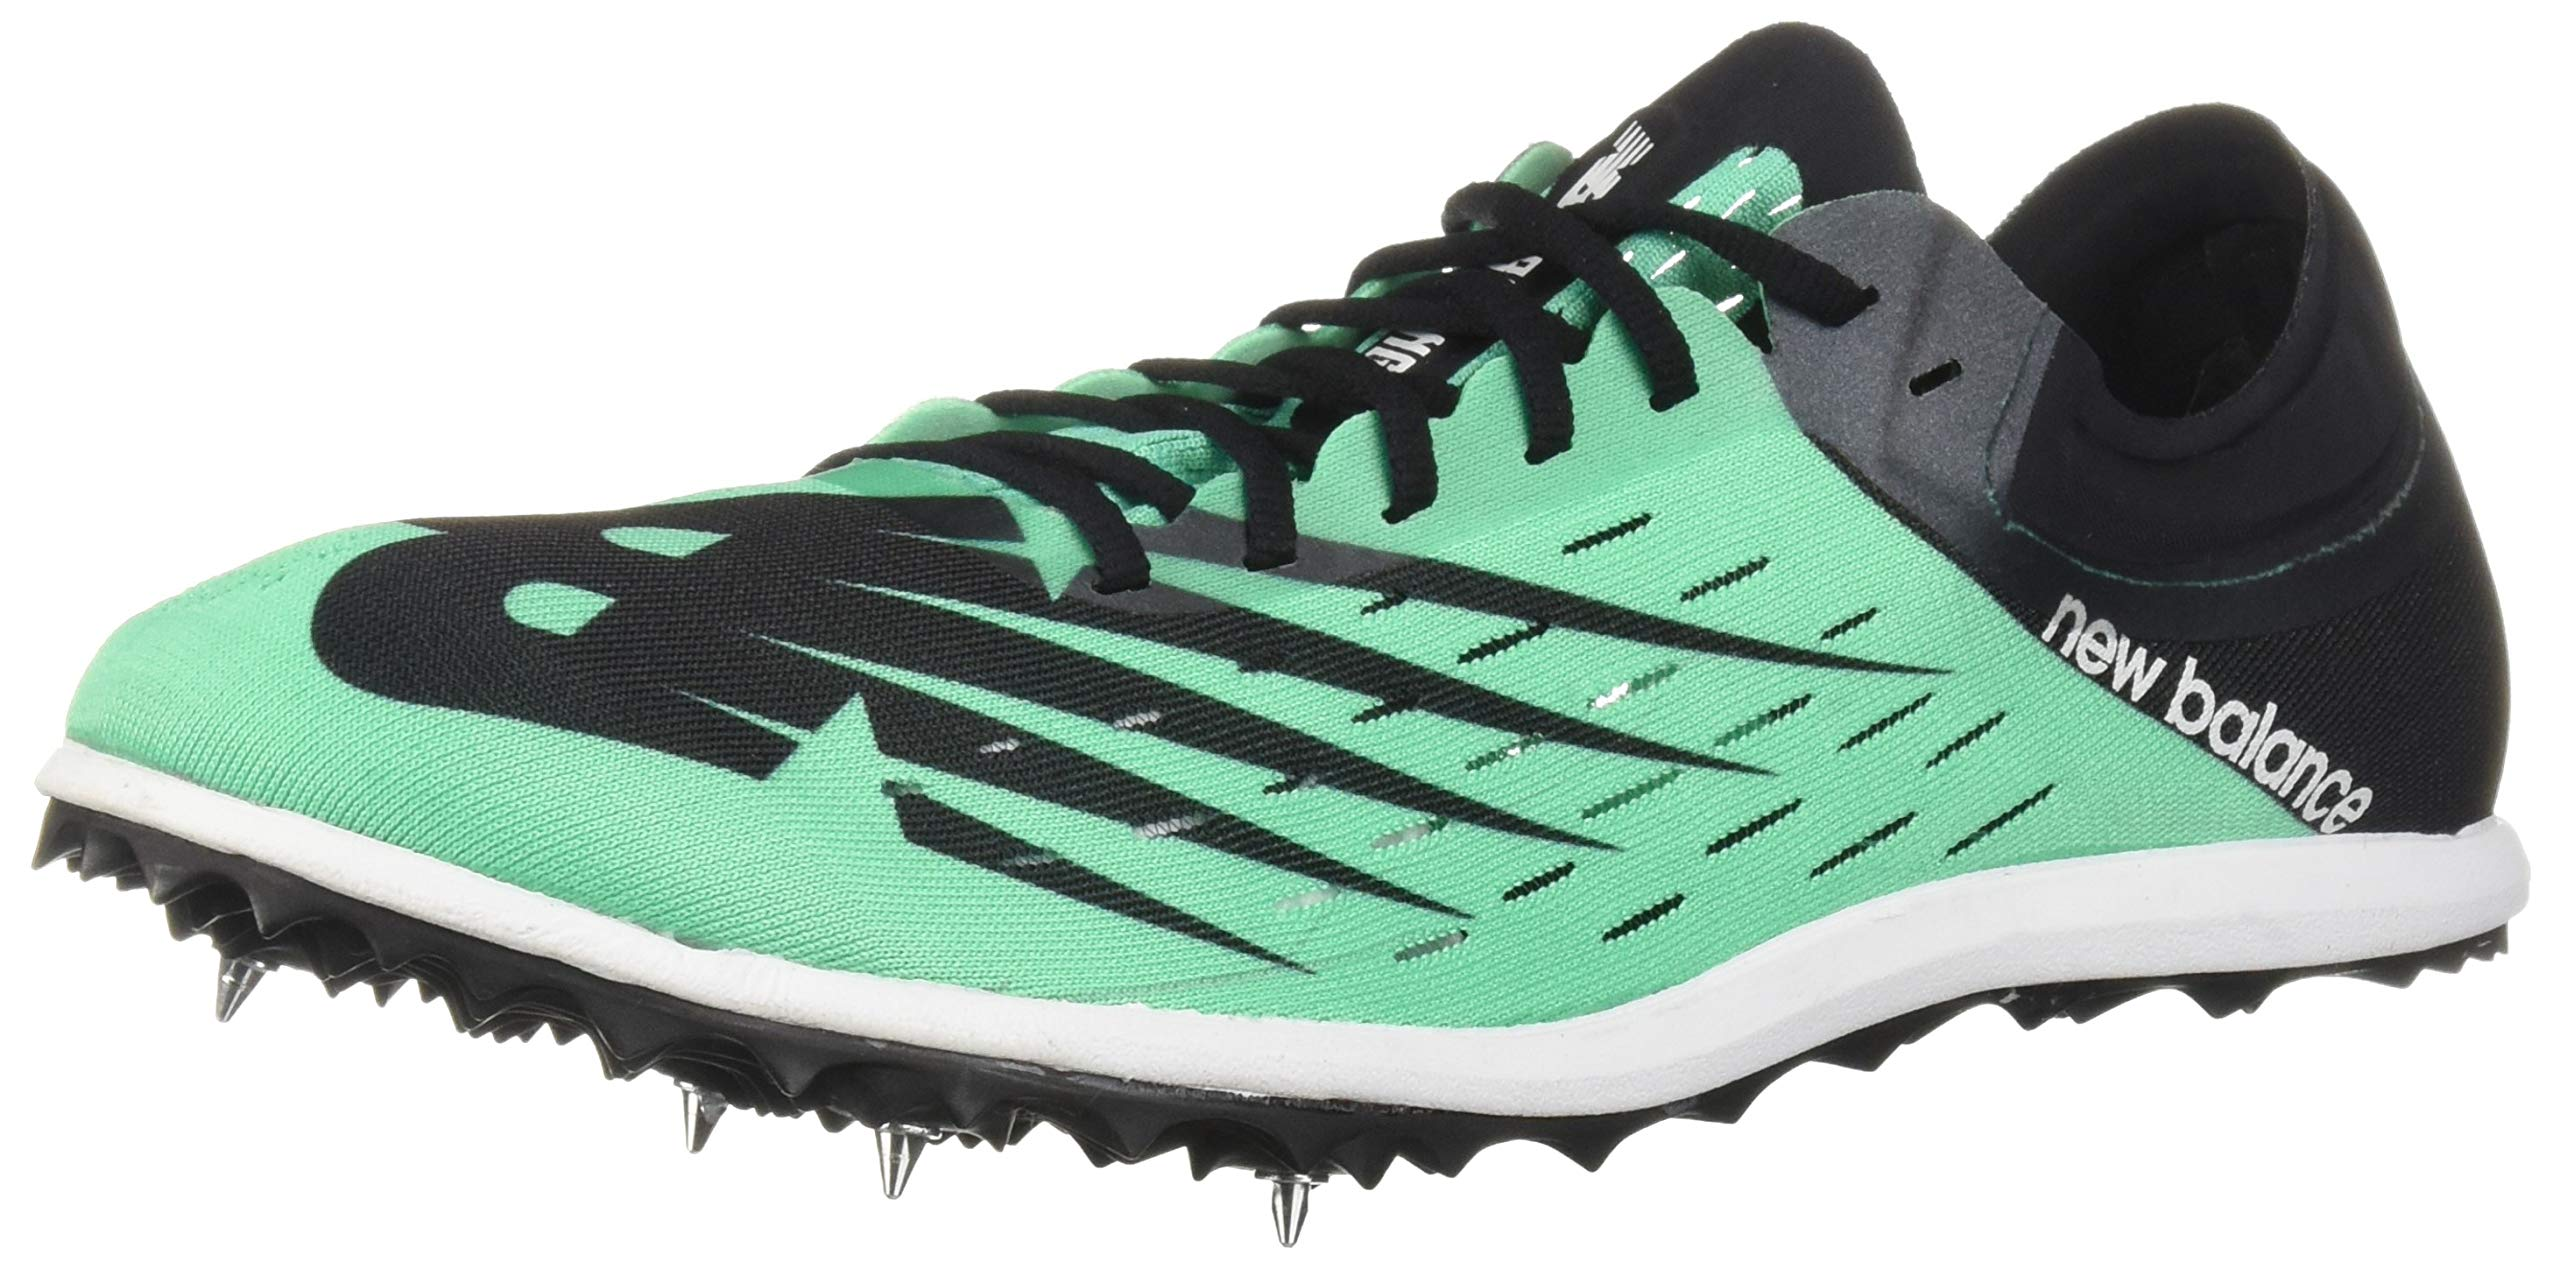 New Balance Men's 5K V6 Track Shoe, neon Emerald/Black 8.5 D US